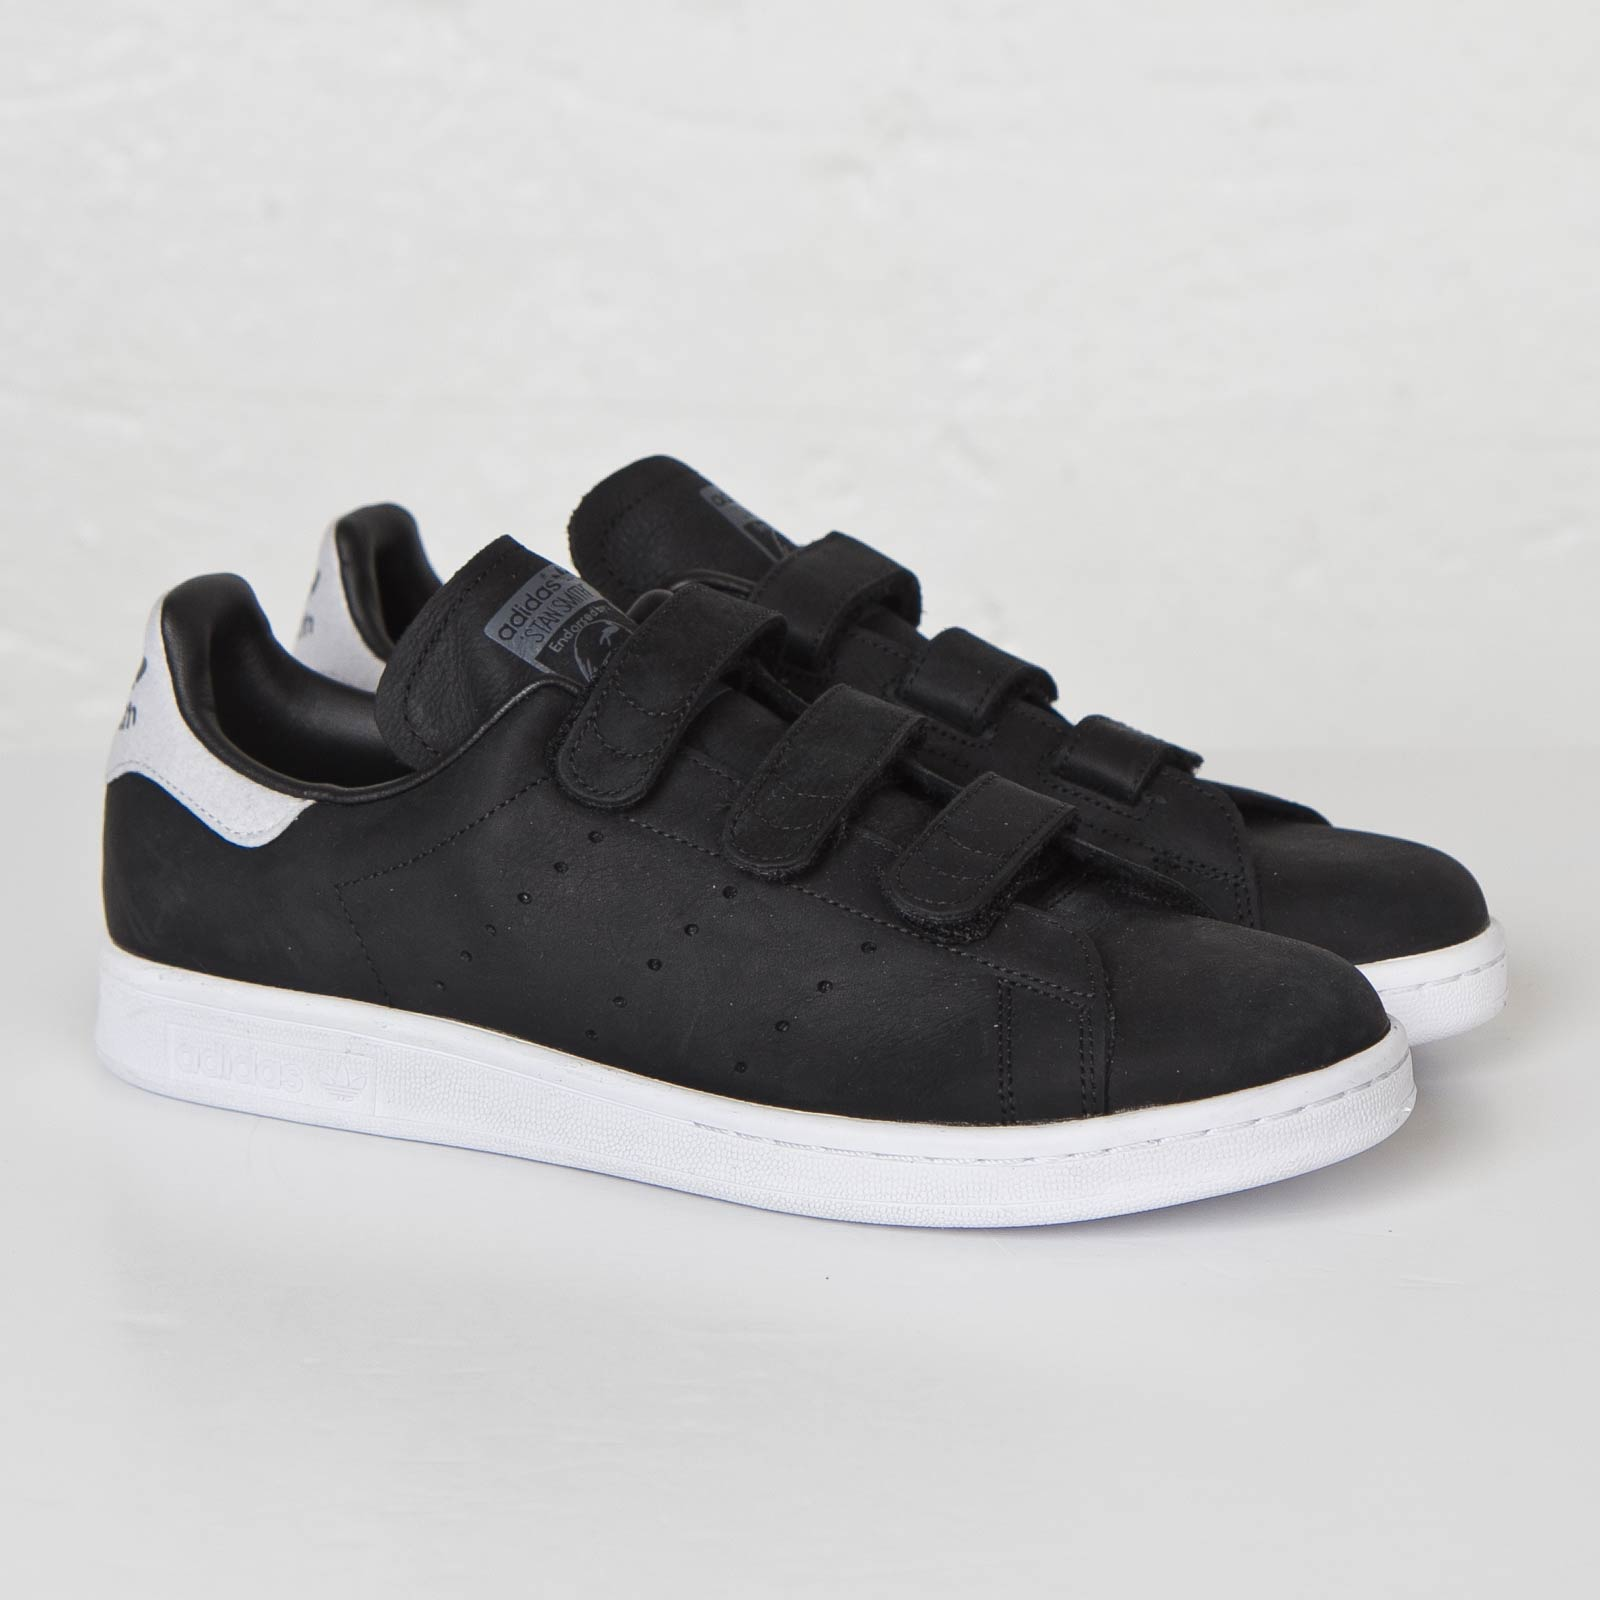 shades of release date look out for Schwarze ADIDAS Sneaker STAN SMITH CF I